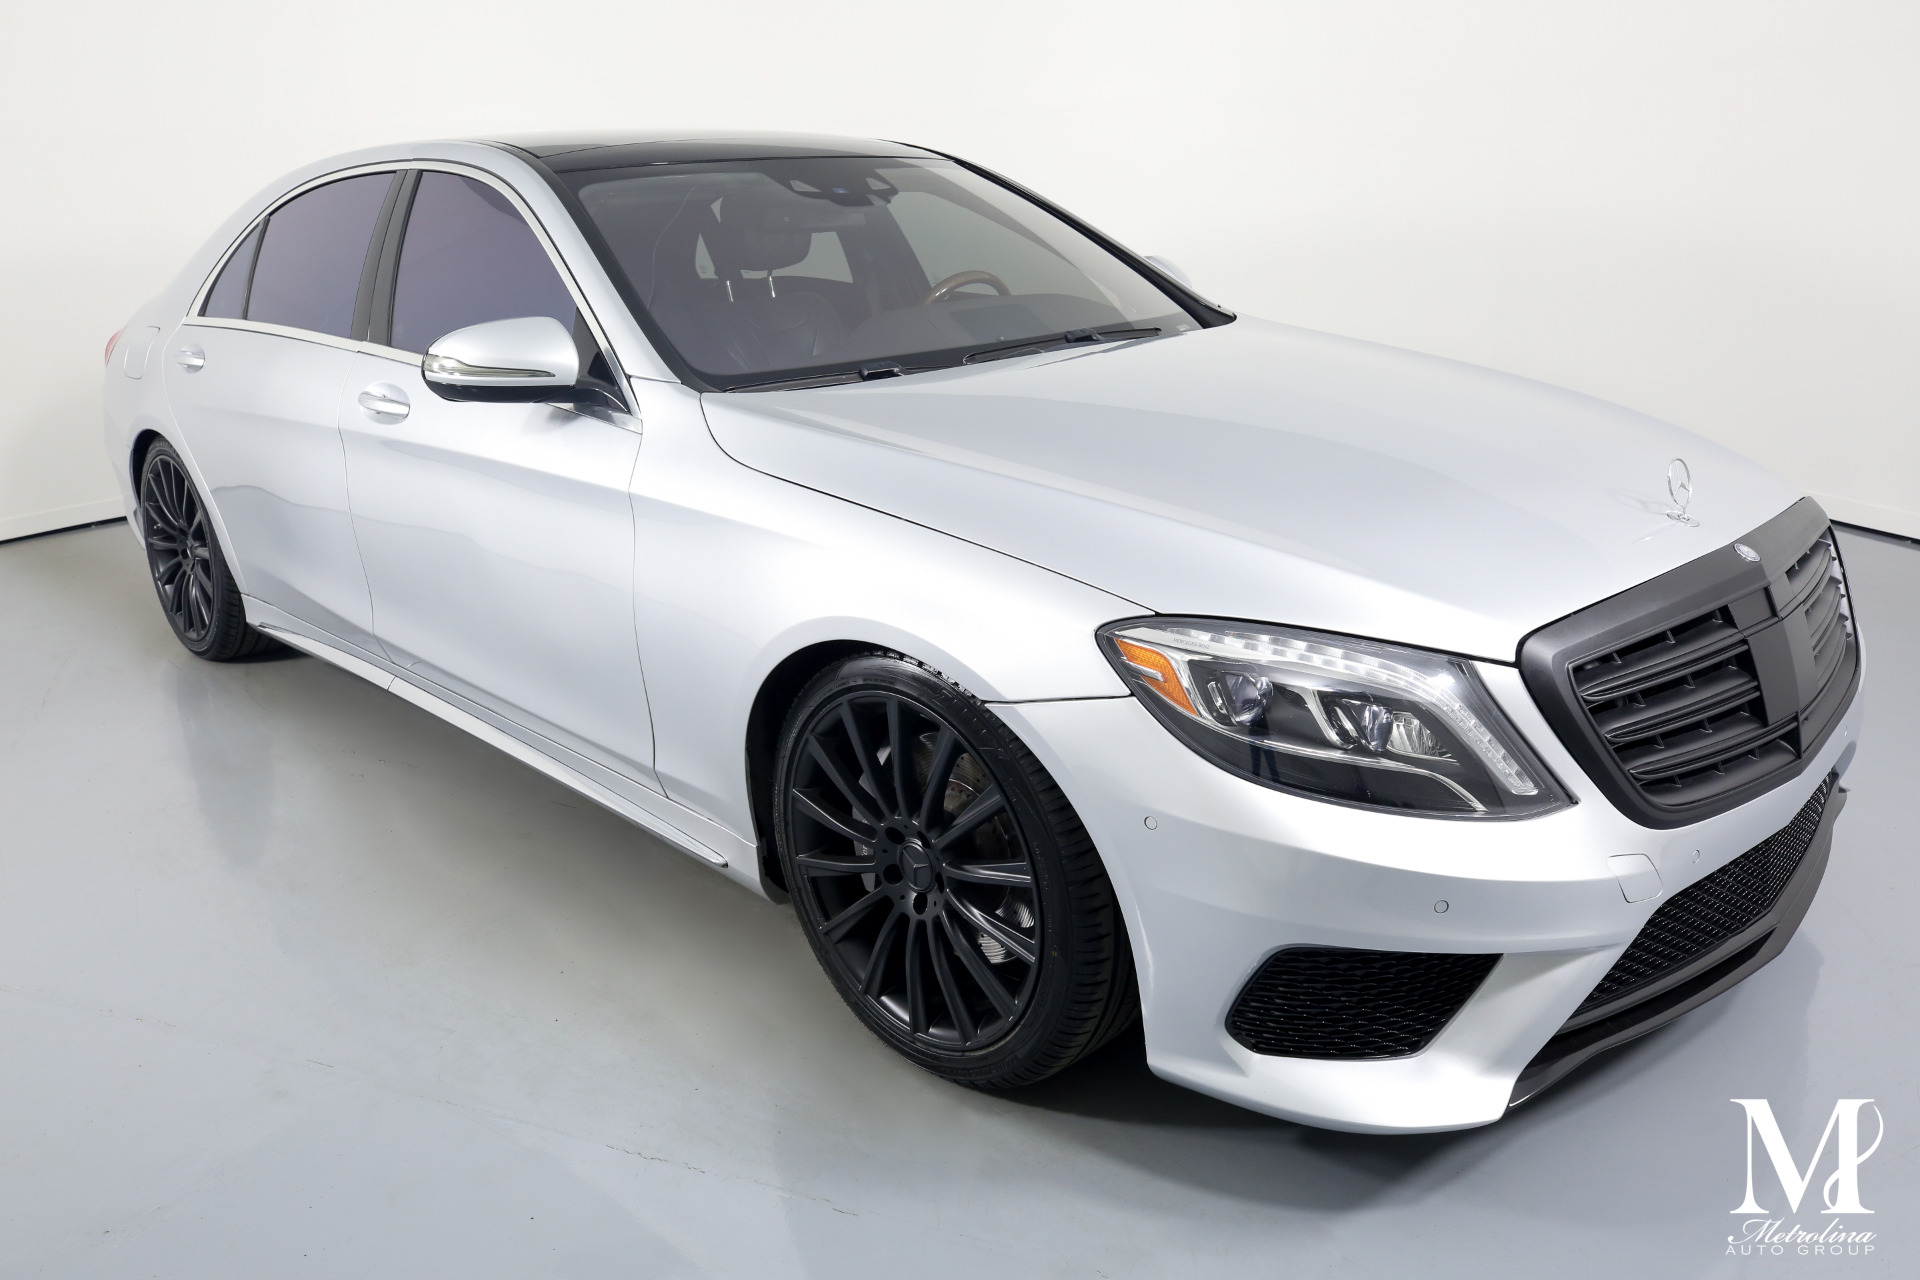 Used 2014 Mercedes-Benz S-Class S 550 for sale $49,996 at Metrolina Auto Group in Charlotte NC 28217 - 2